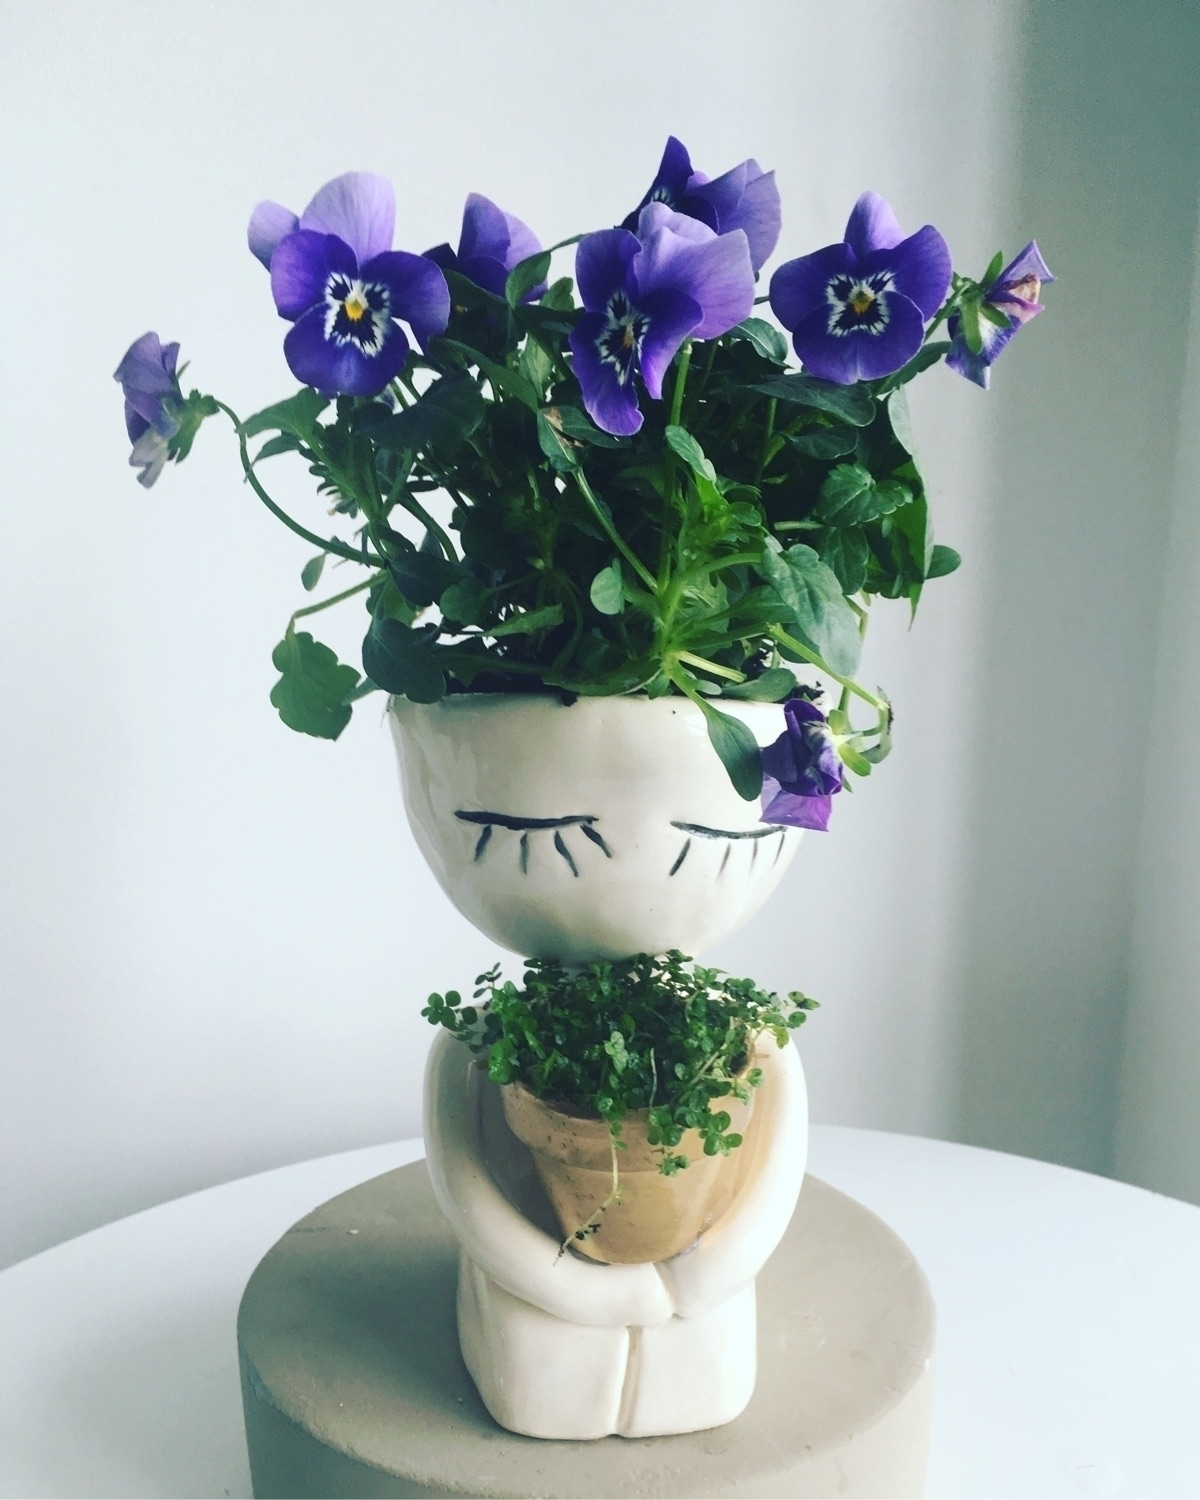 dude pot violet hair - pottery#ceramics#flowers#livingdecortwins#littledudepot - livingdecortwins | ello